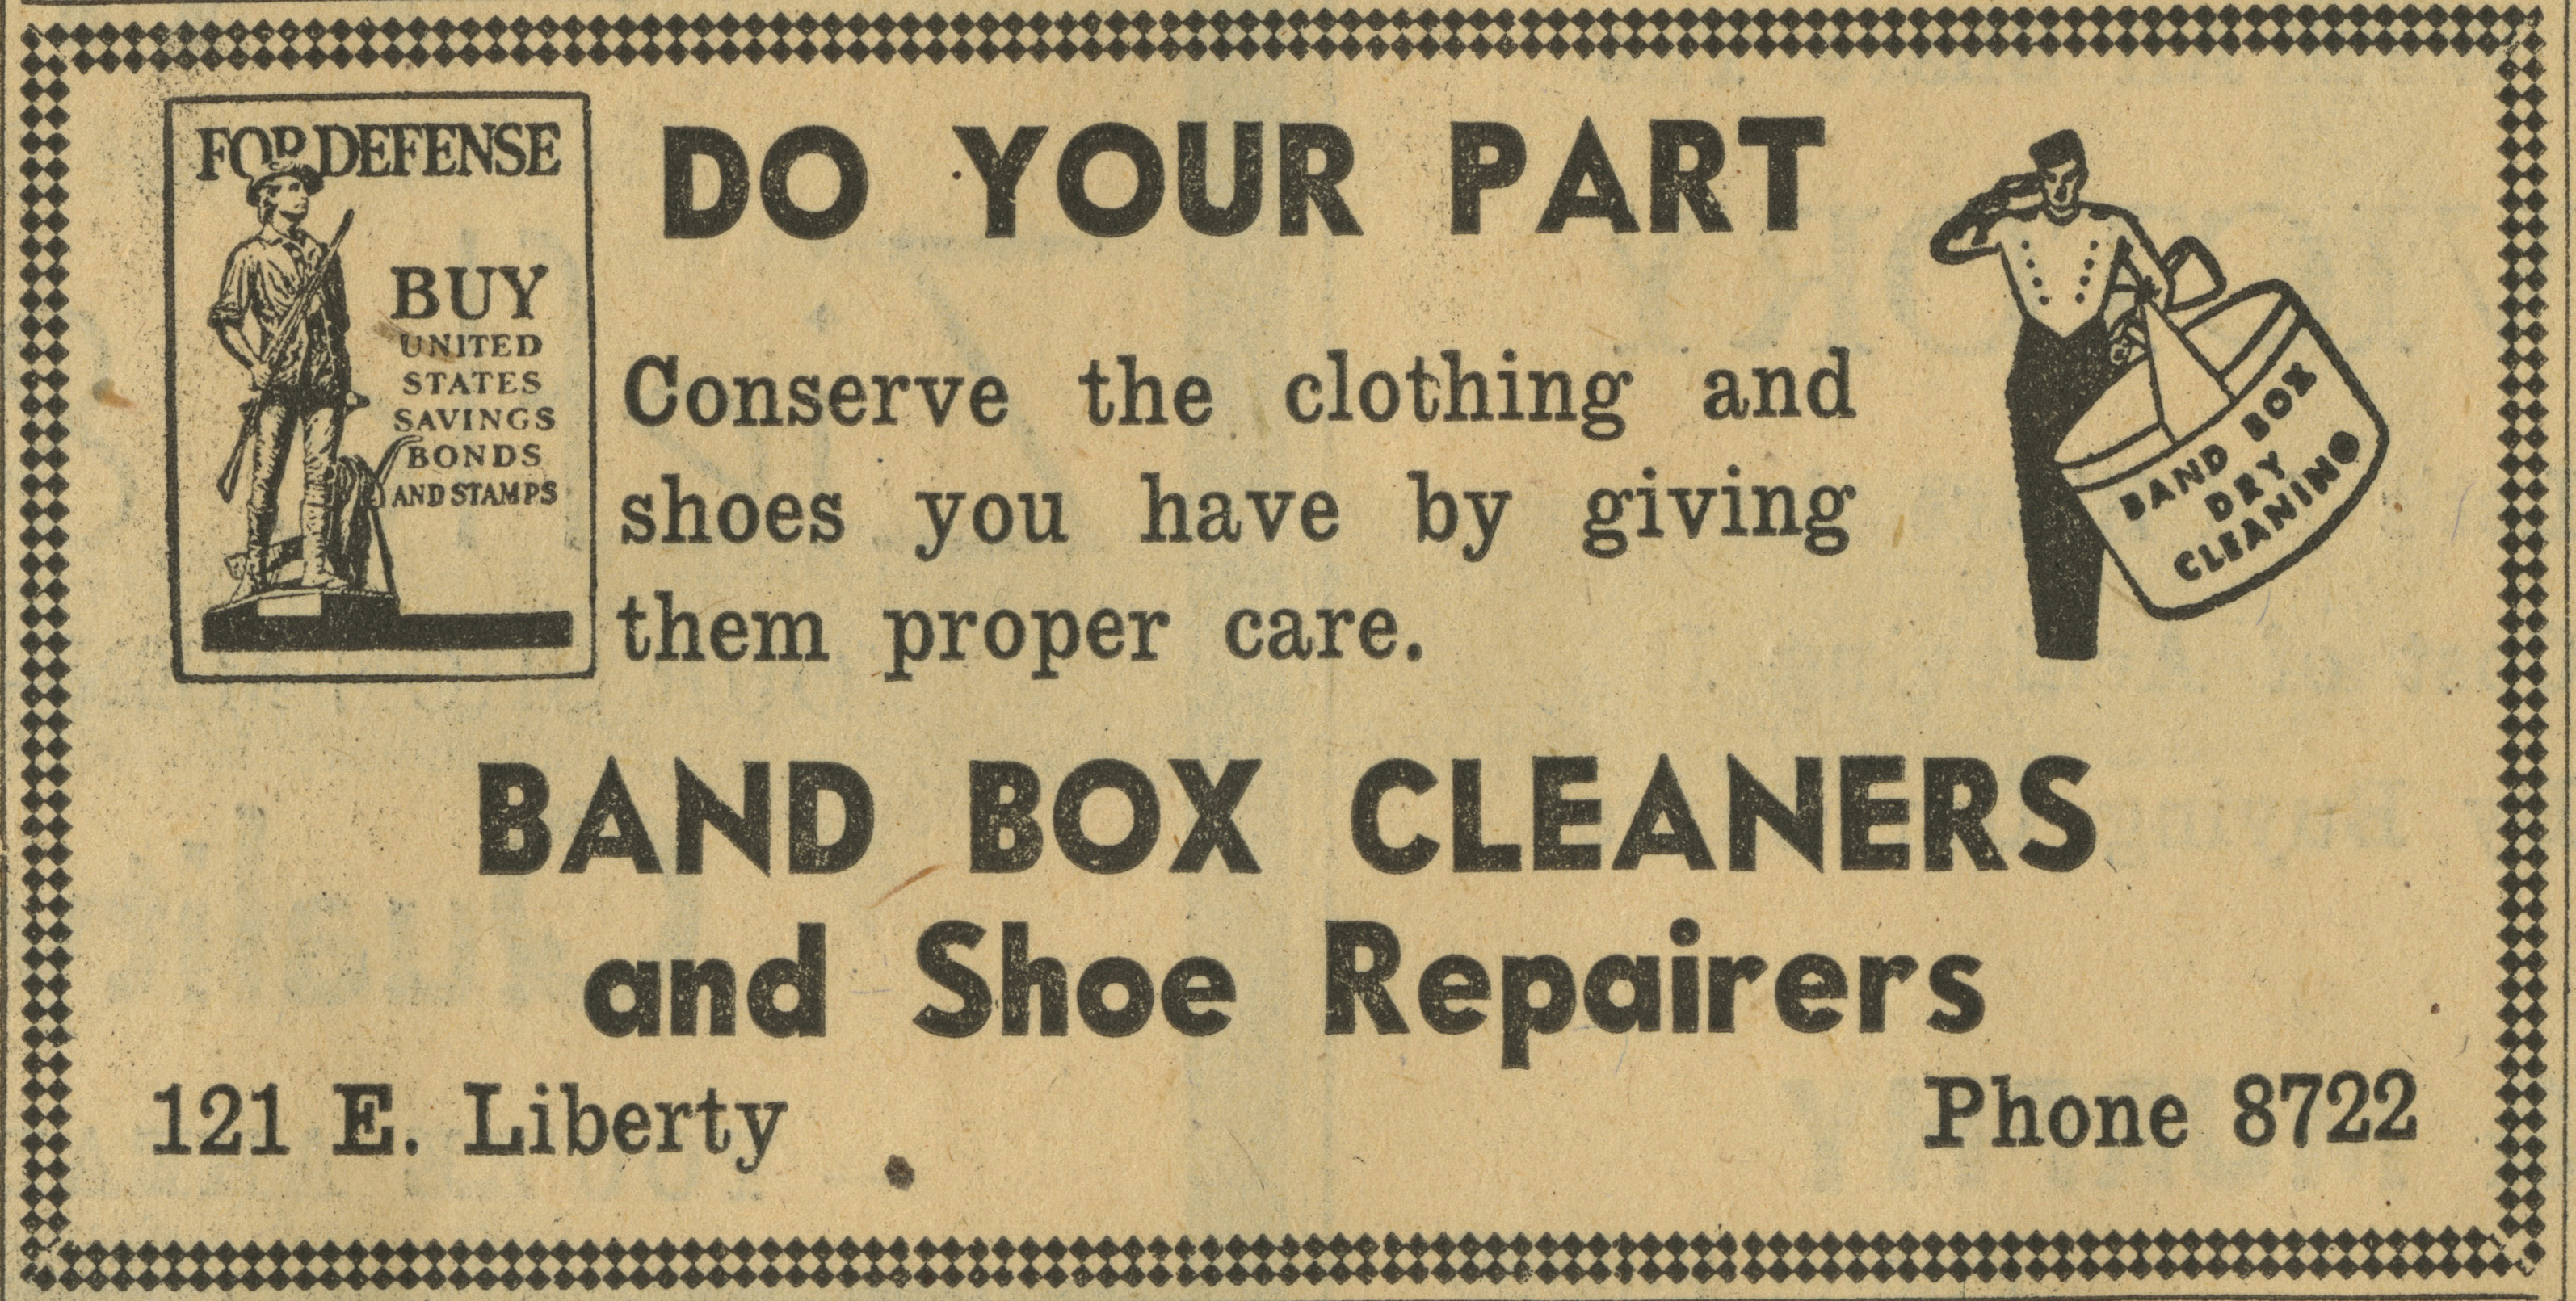 Band Box Cleaners and Shoe Repairers [advertisement] image